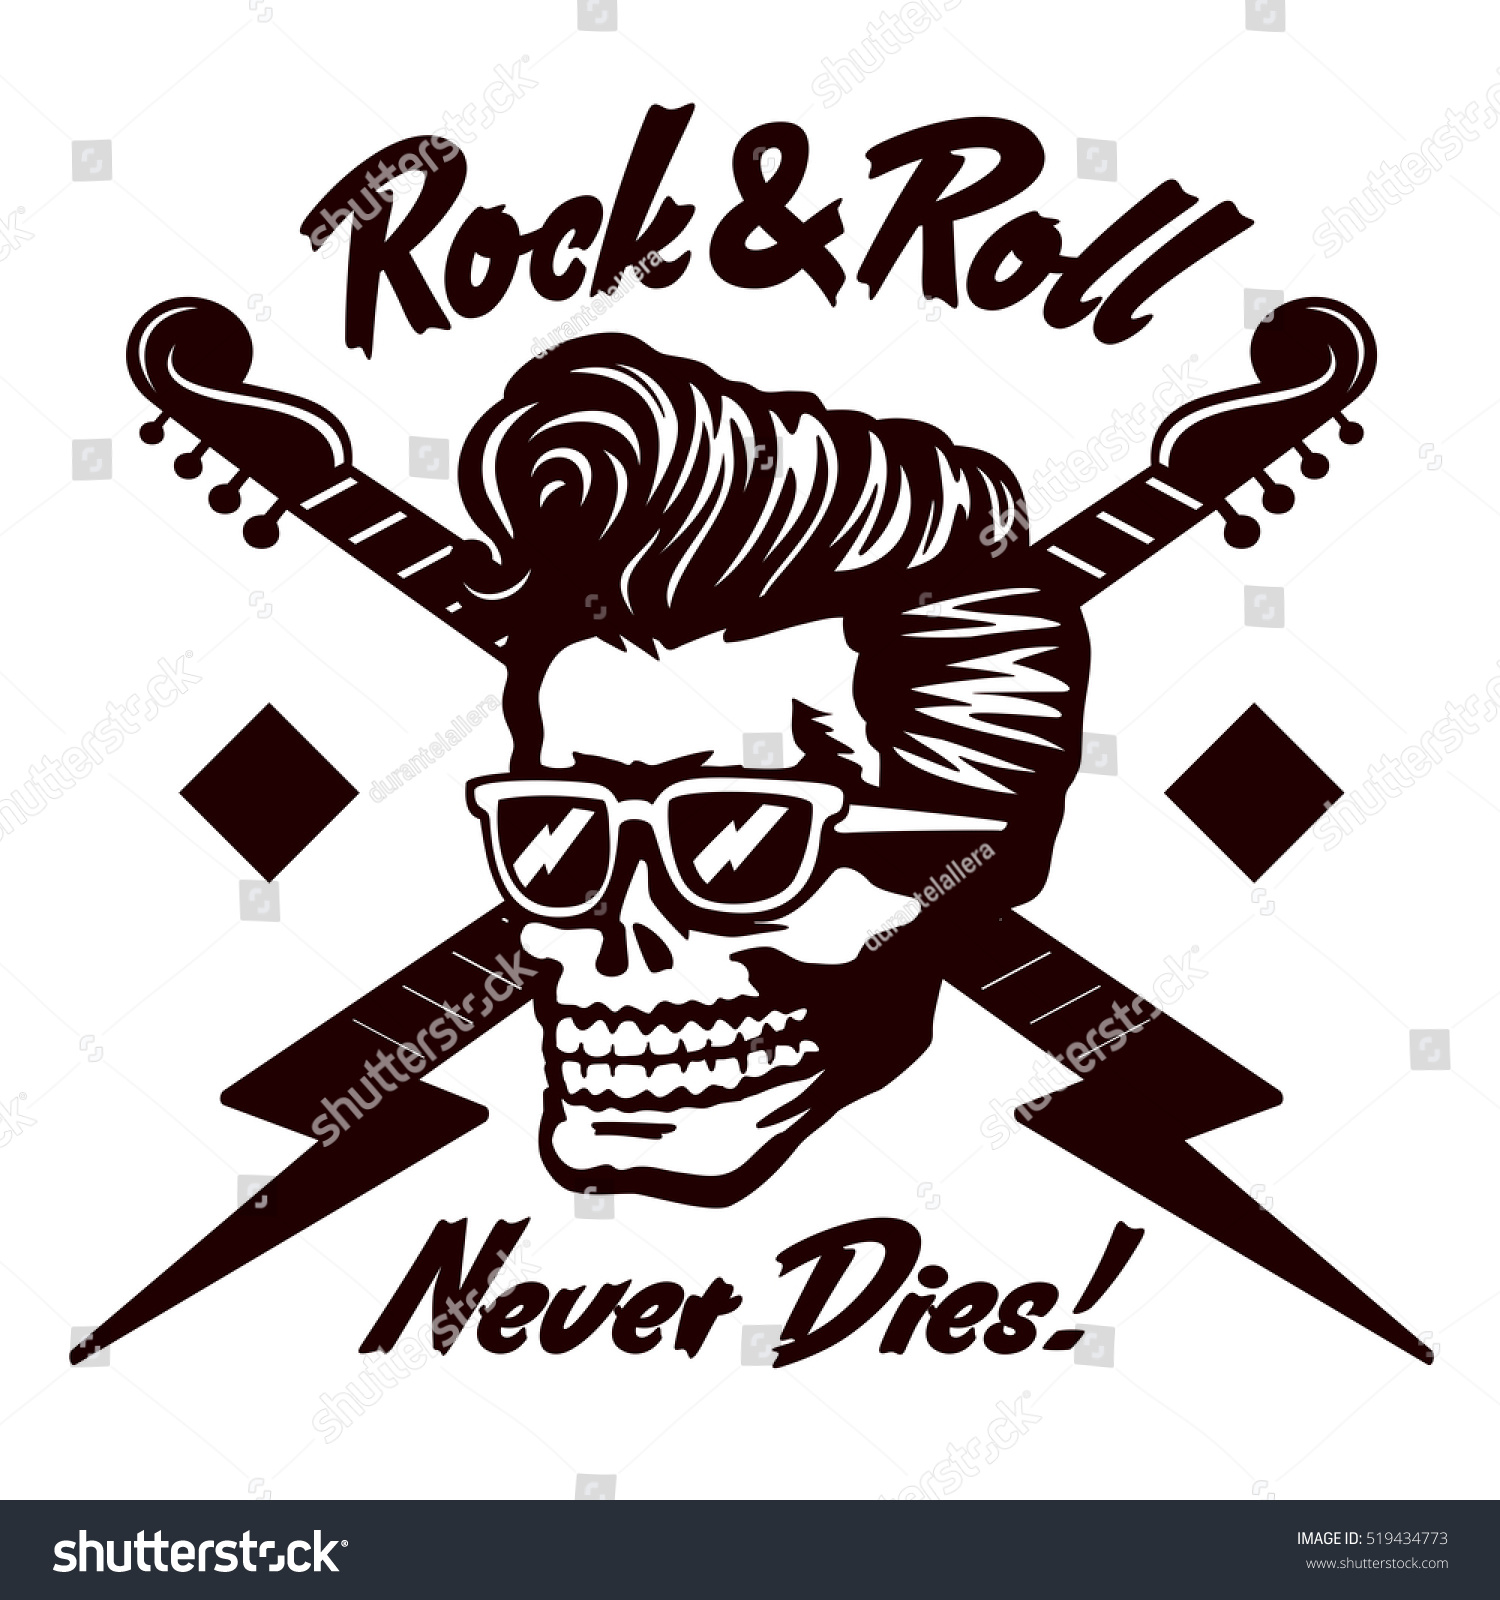 Create A Rockabilly Poster With Vector Set 22: Rocknroll Never Dies Skull Zombie Head Stock Vector